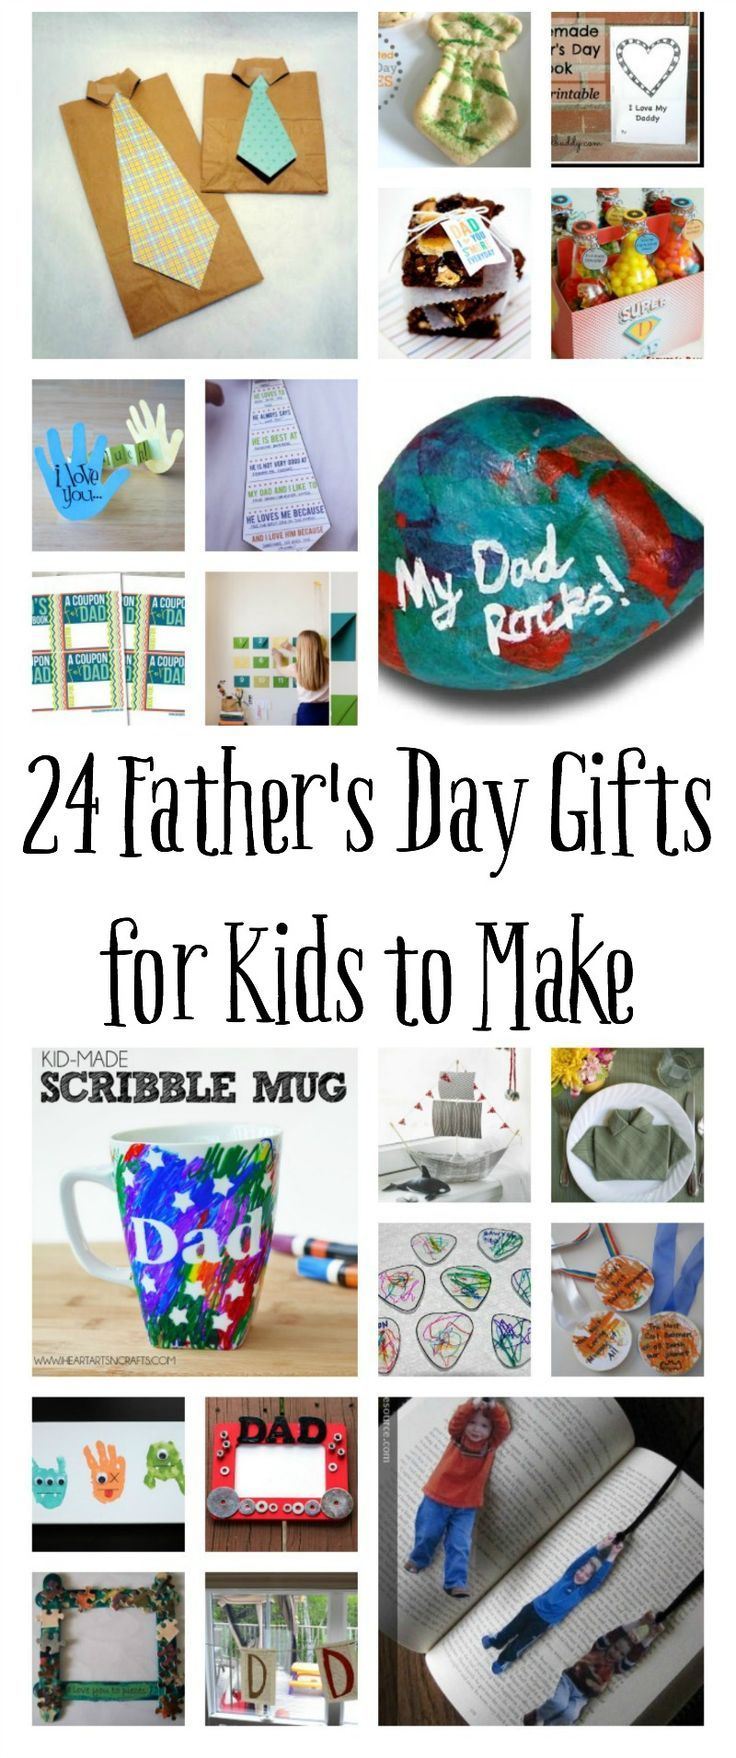 100 Homemade Father\'s Day Gifts for Kids to Make | DIY Gifting ...